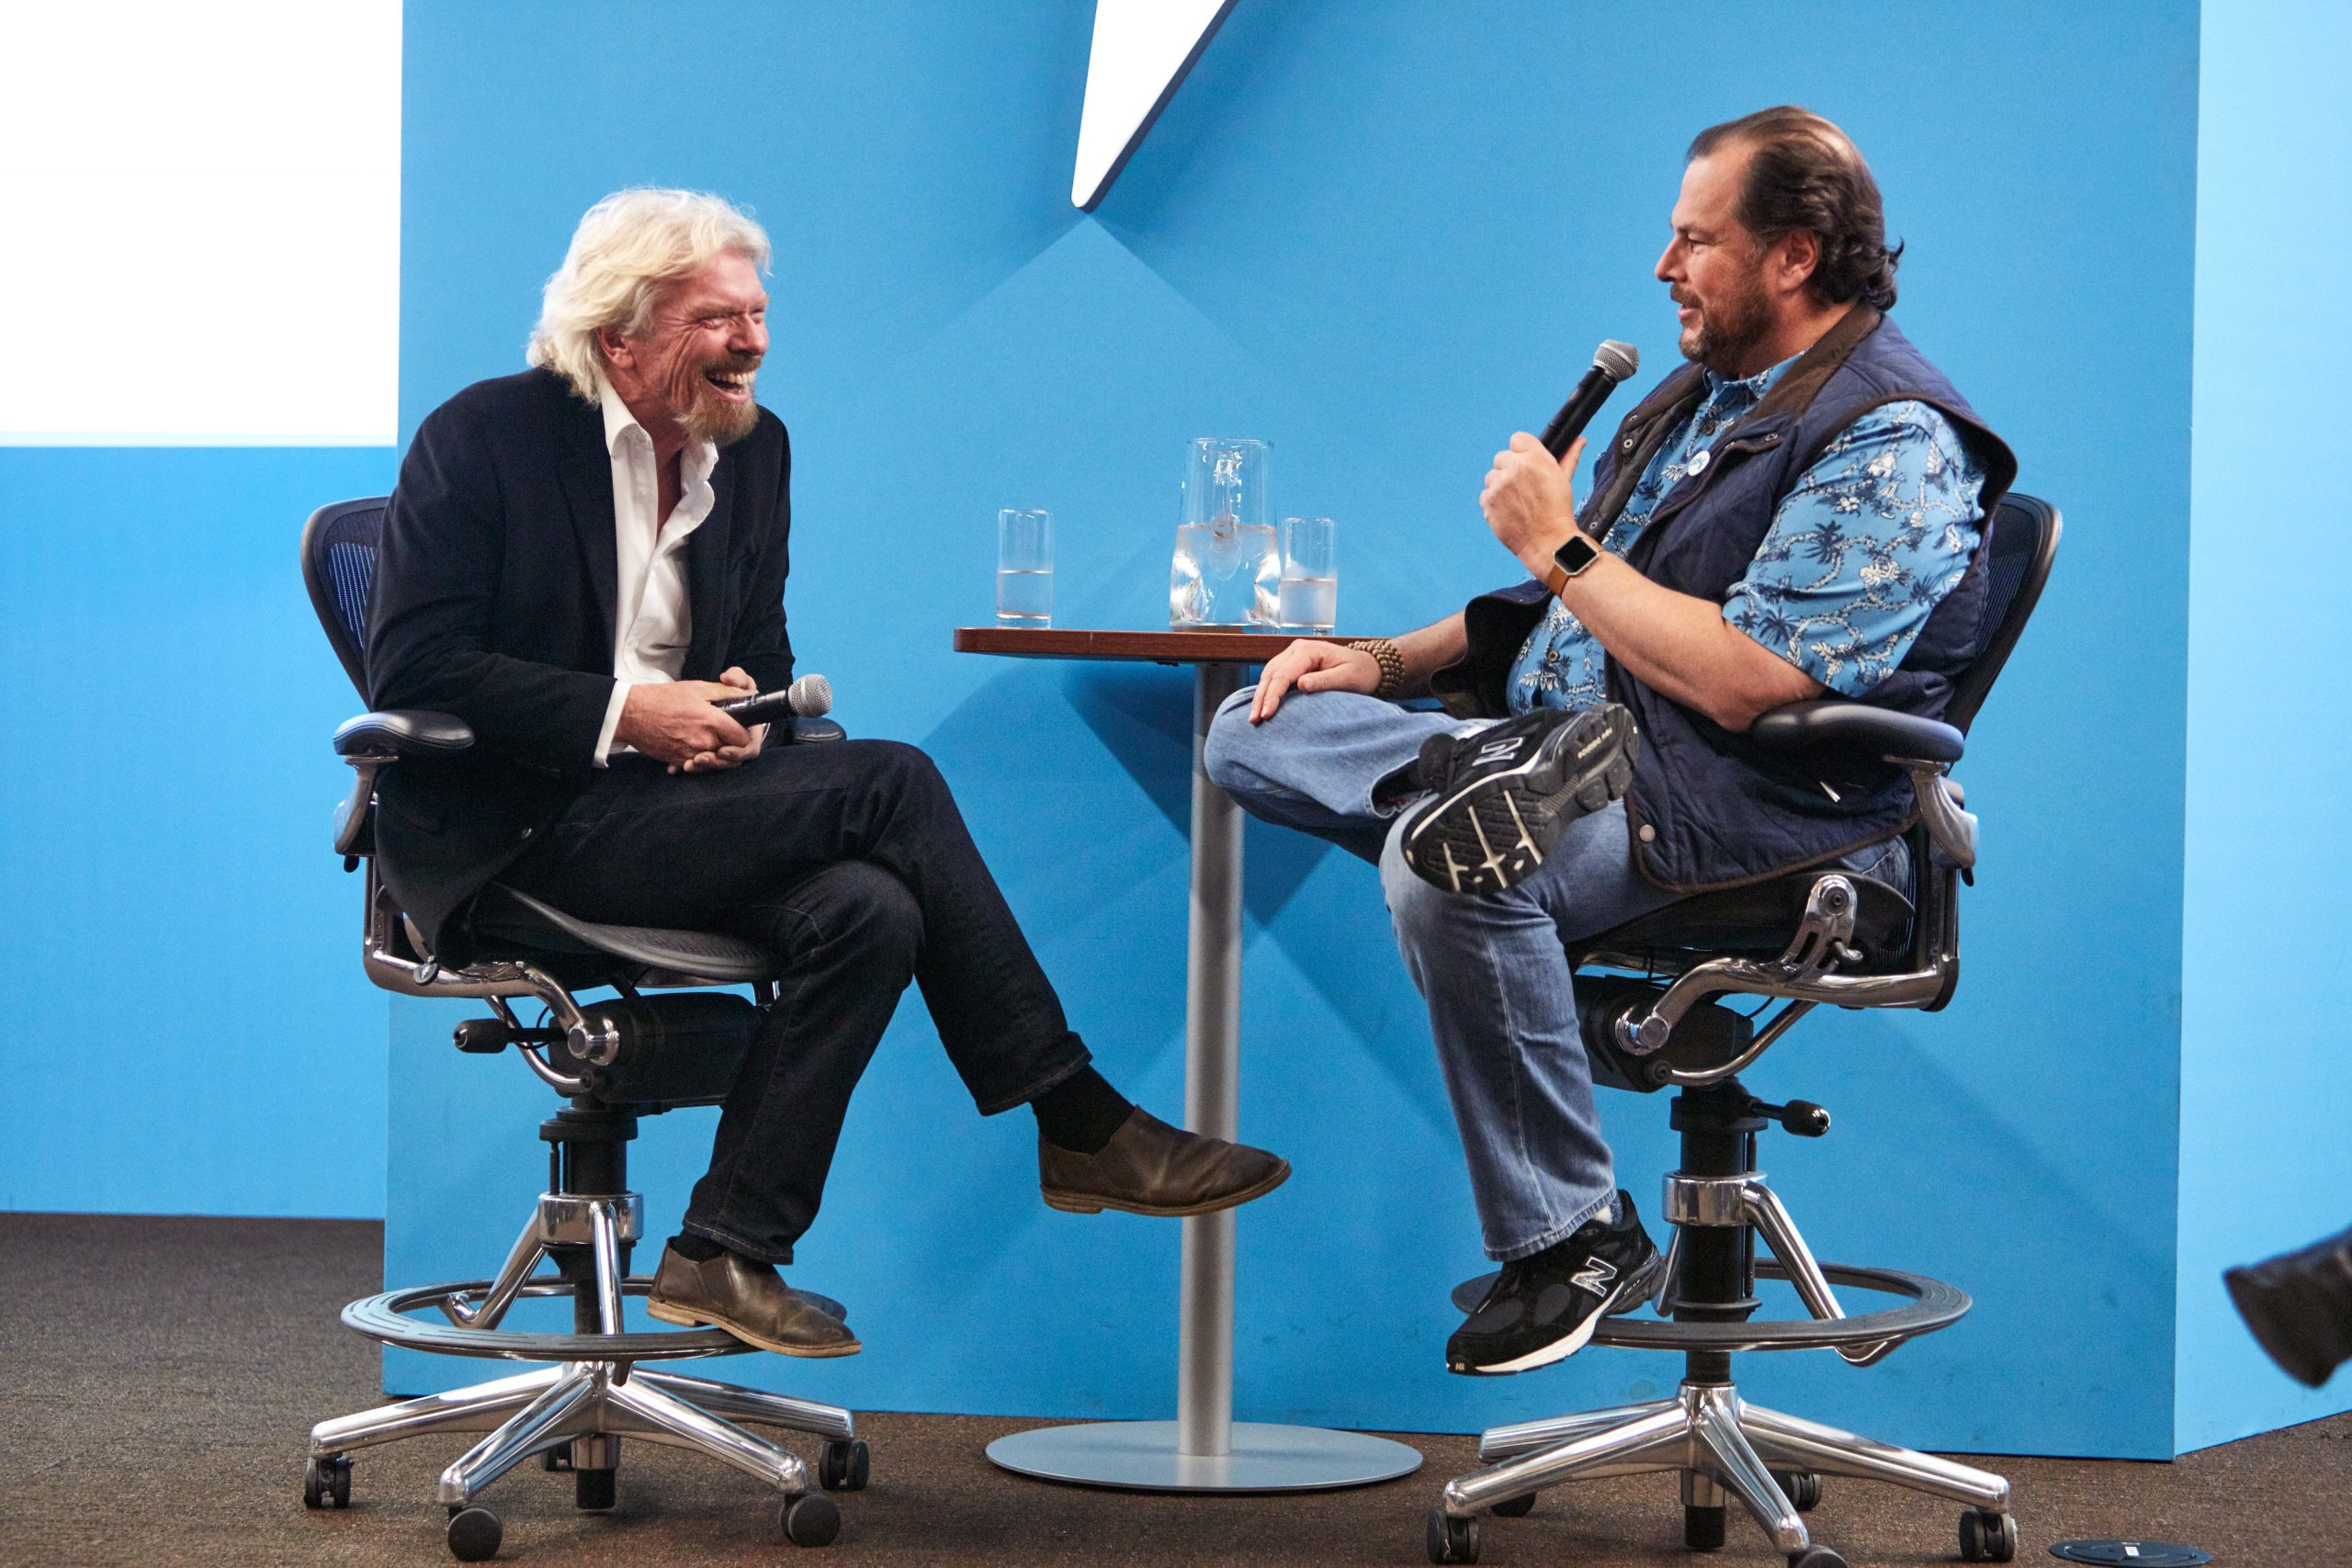 Richard Branson Top 10 Quotes on modern Leadership